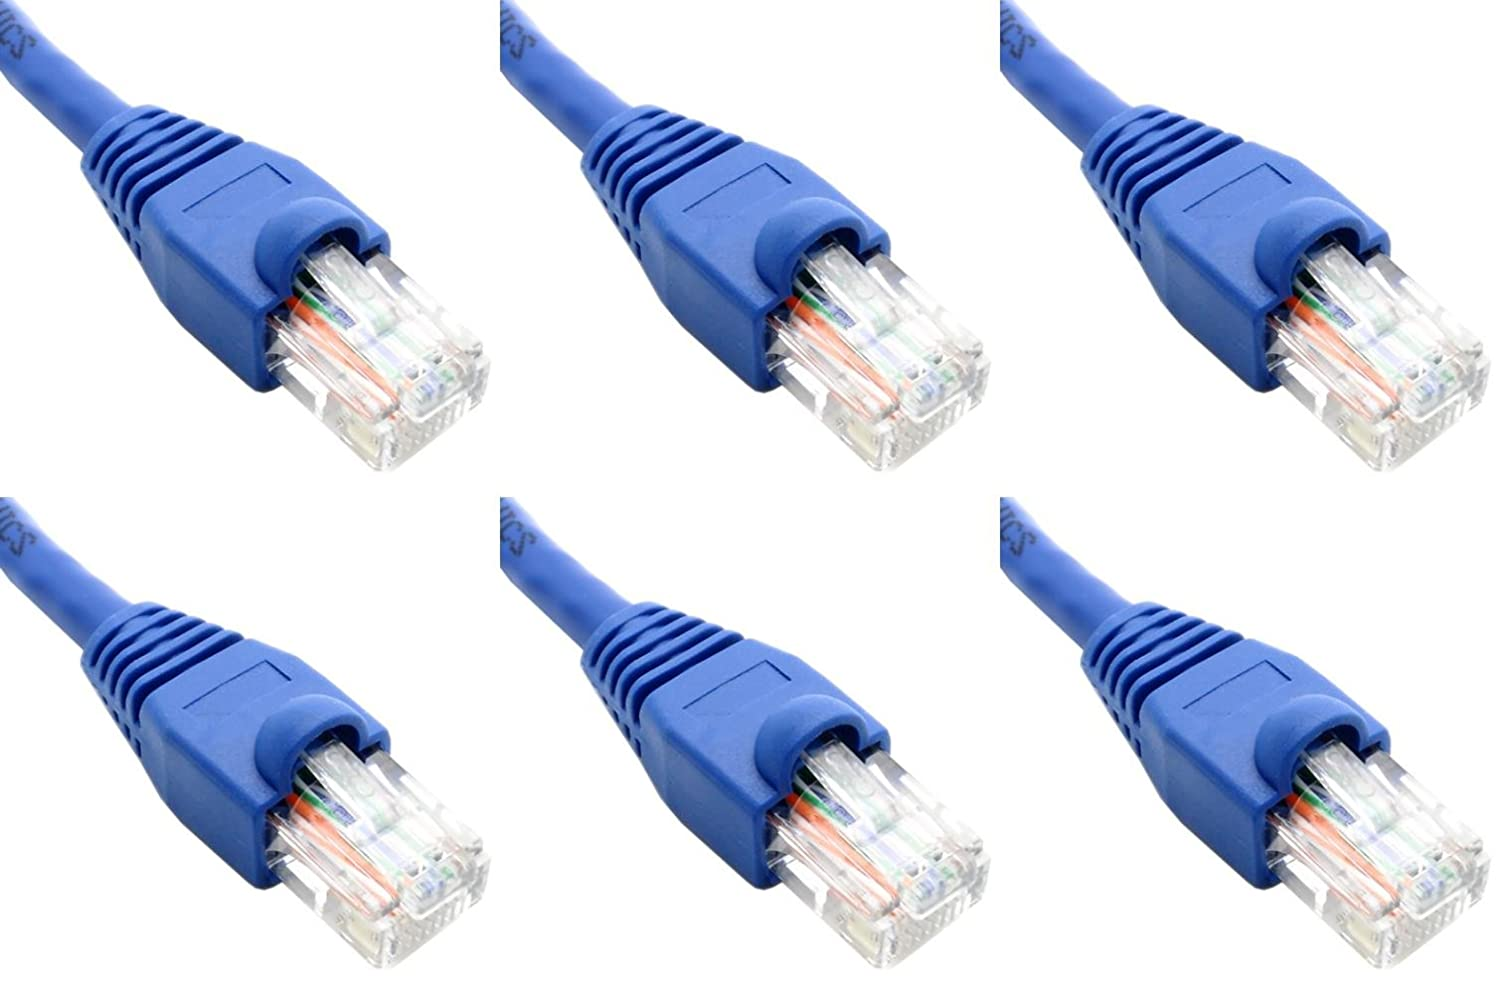 Ultra Spec Cables Pack of 6 Blue 2FT Cat6 Ethernet Network Cable LAN Internet Patch Cord RJ45 Gigabit